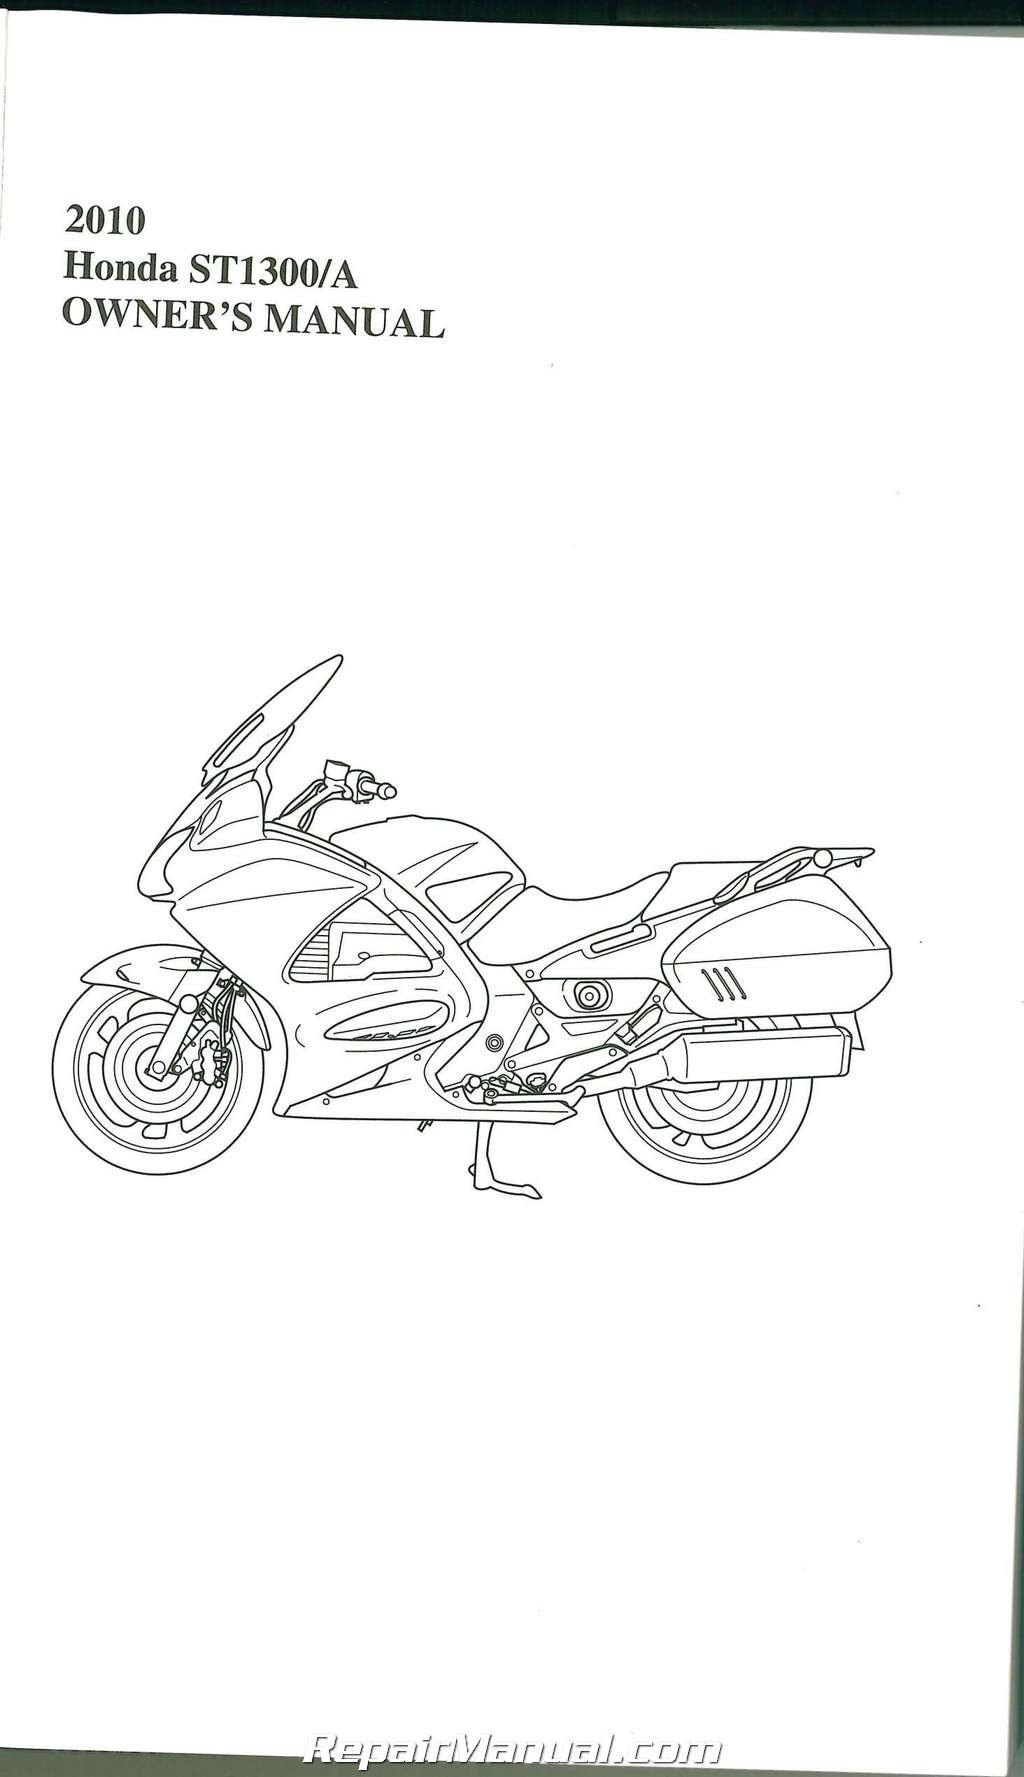 2010 Honda ST1300 A Motorcycle Owners Manual